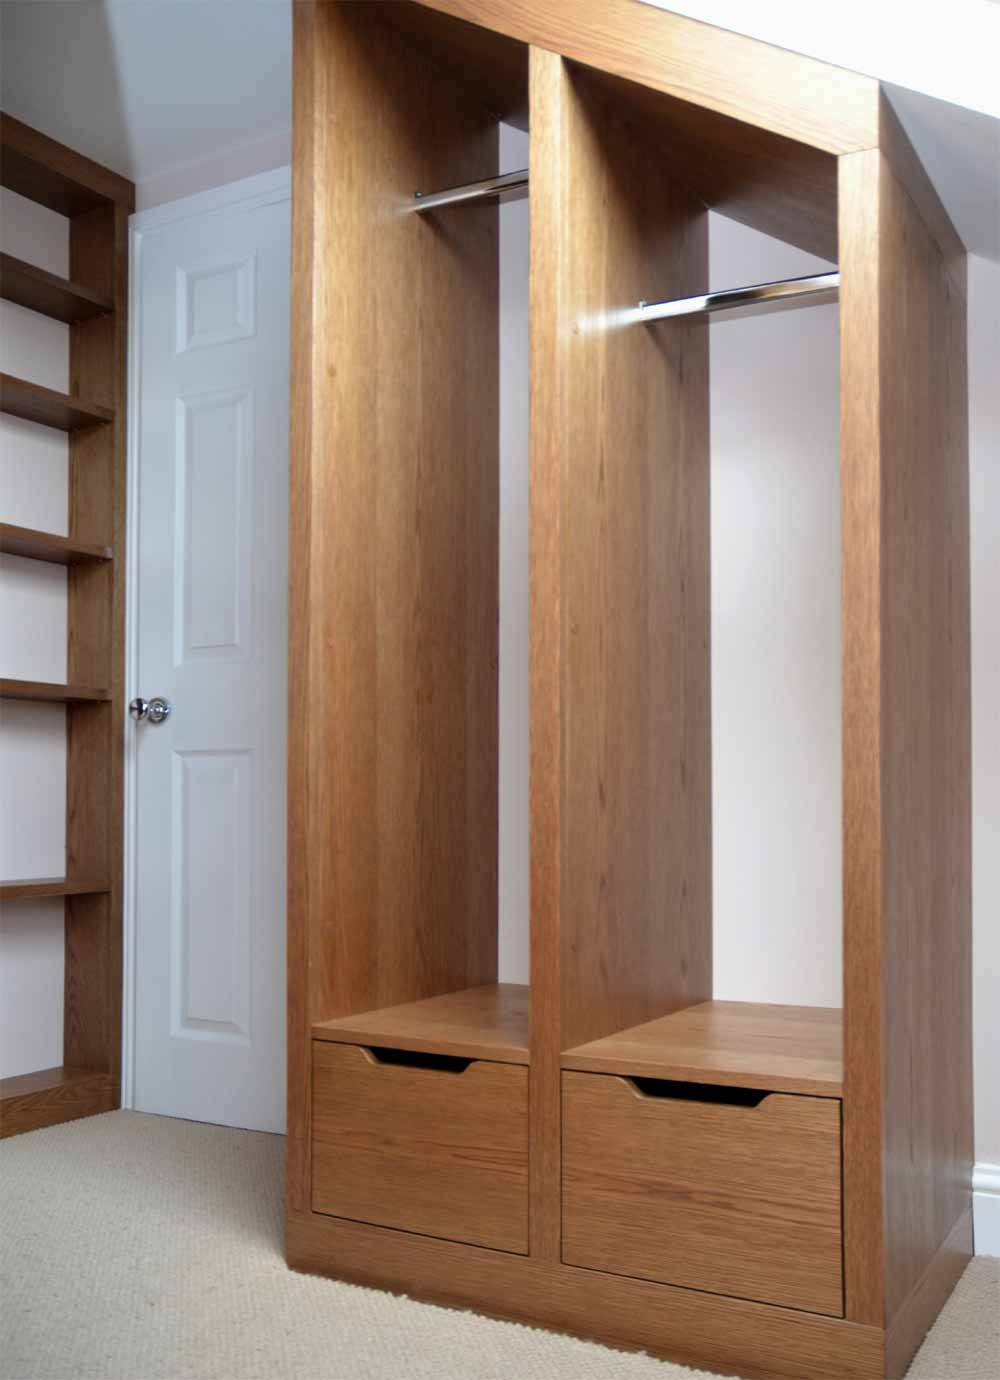 Best ideas about Bedroom Storage Cabinets . Save or Pin Wardrobe Storage Cabinets Now.